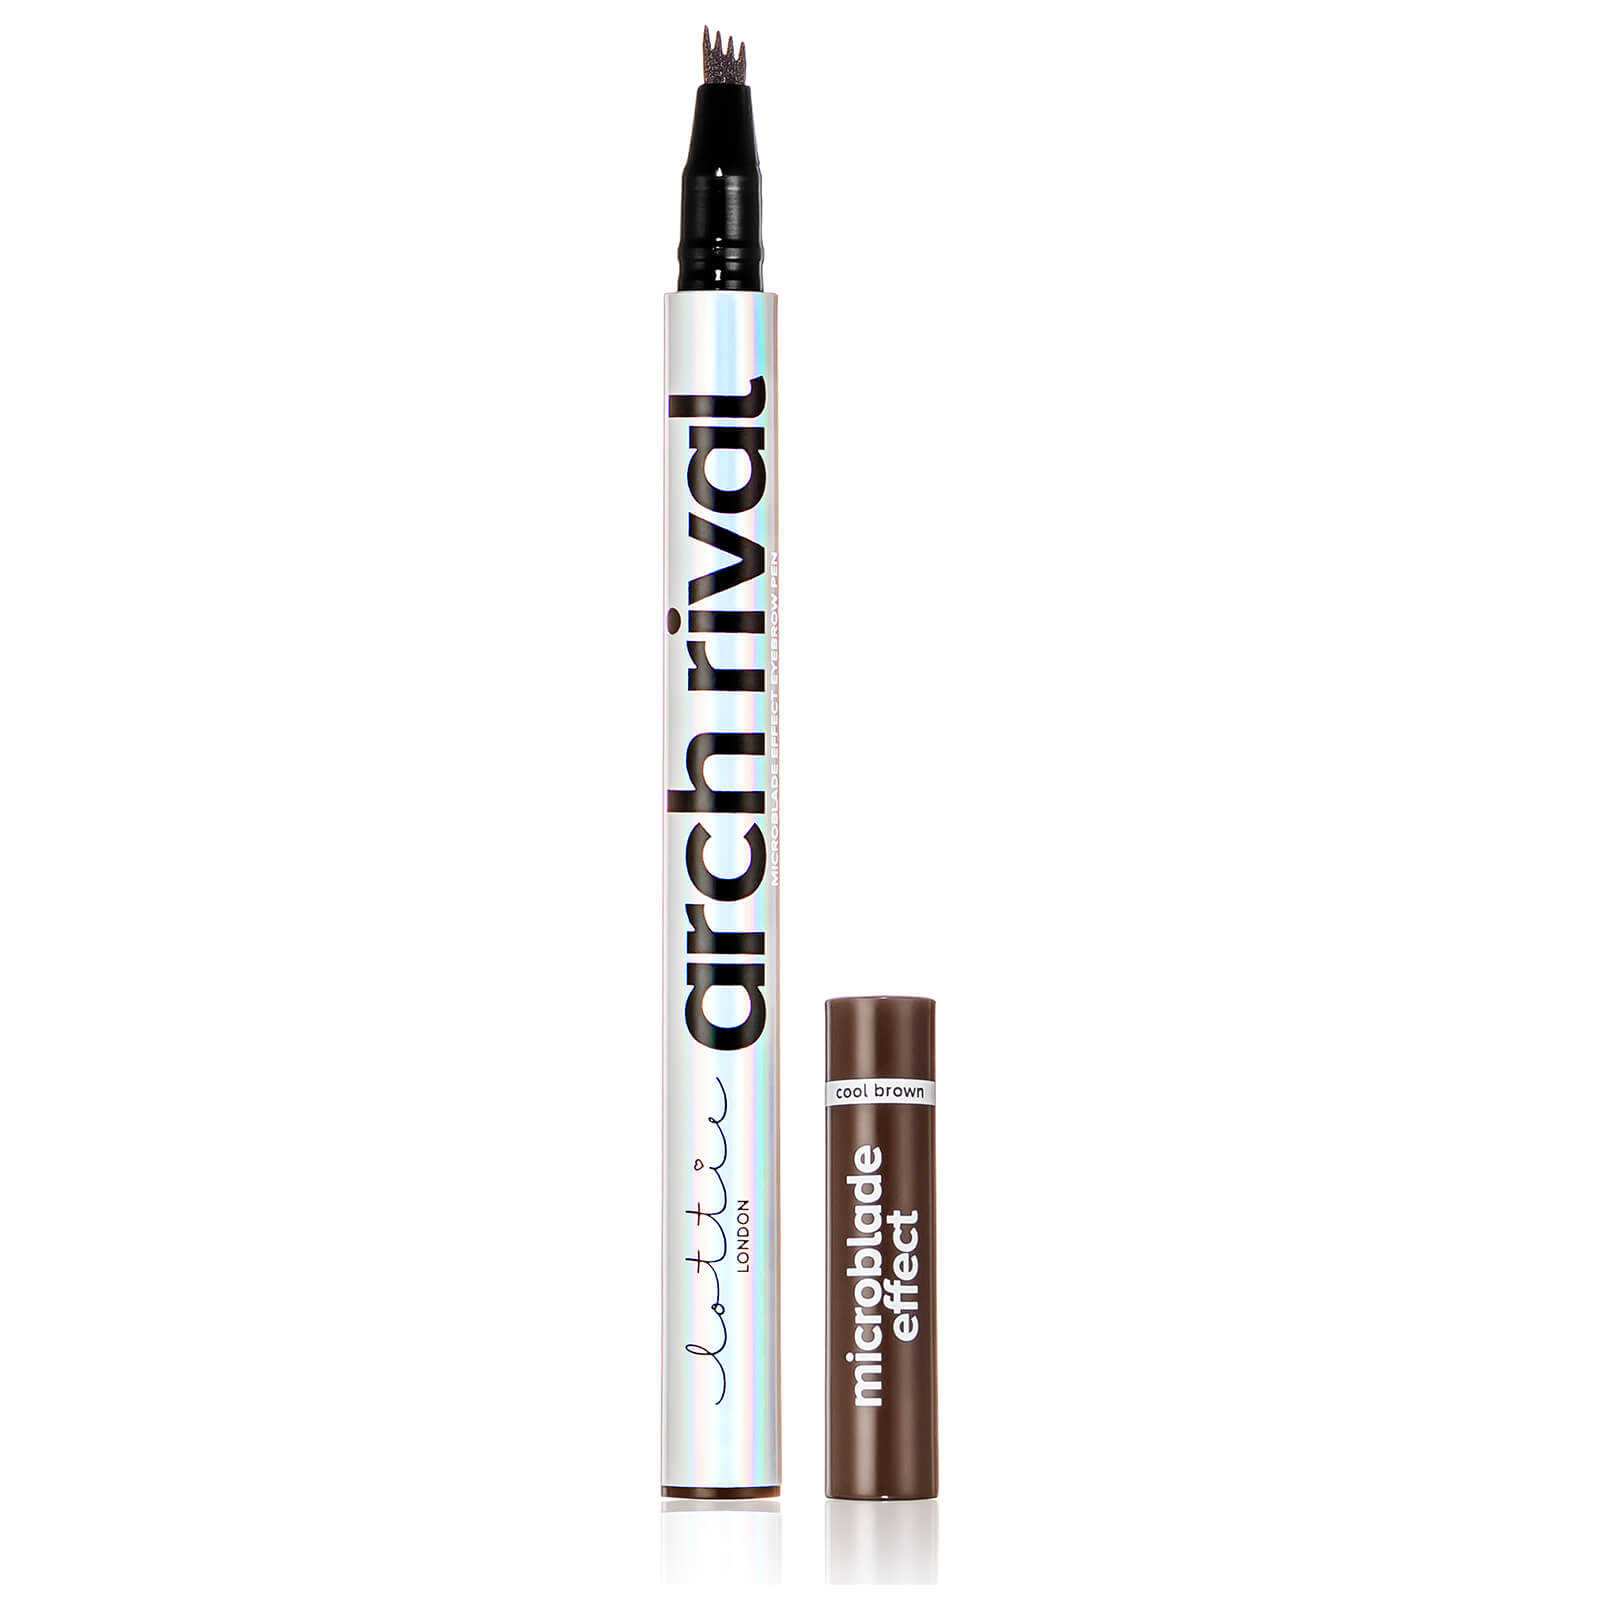 Lottie London Arch Rival Microblade Brow (Various Shades) - Cool Brown